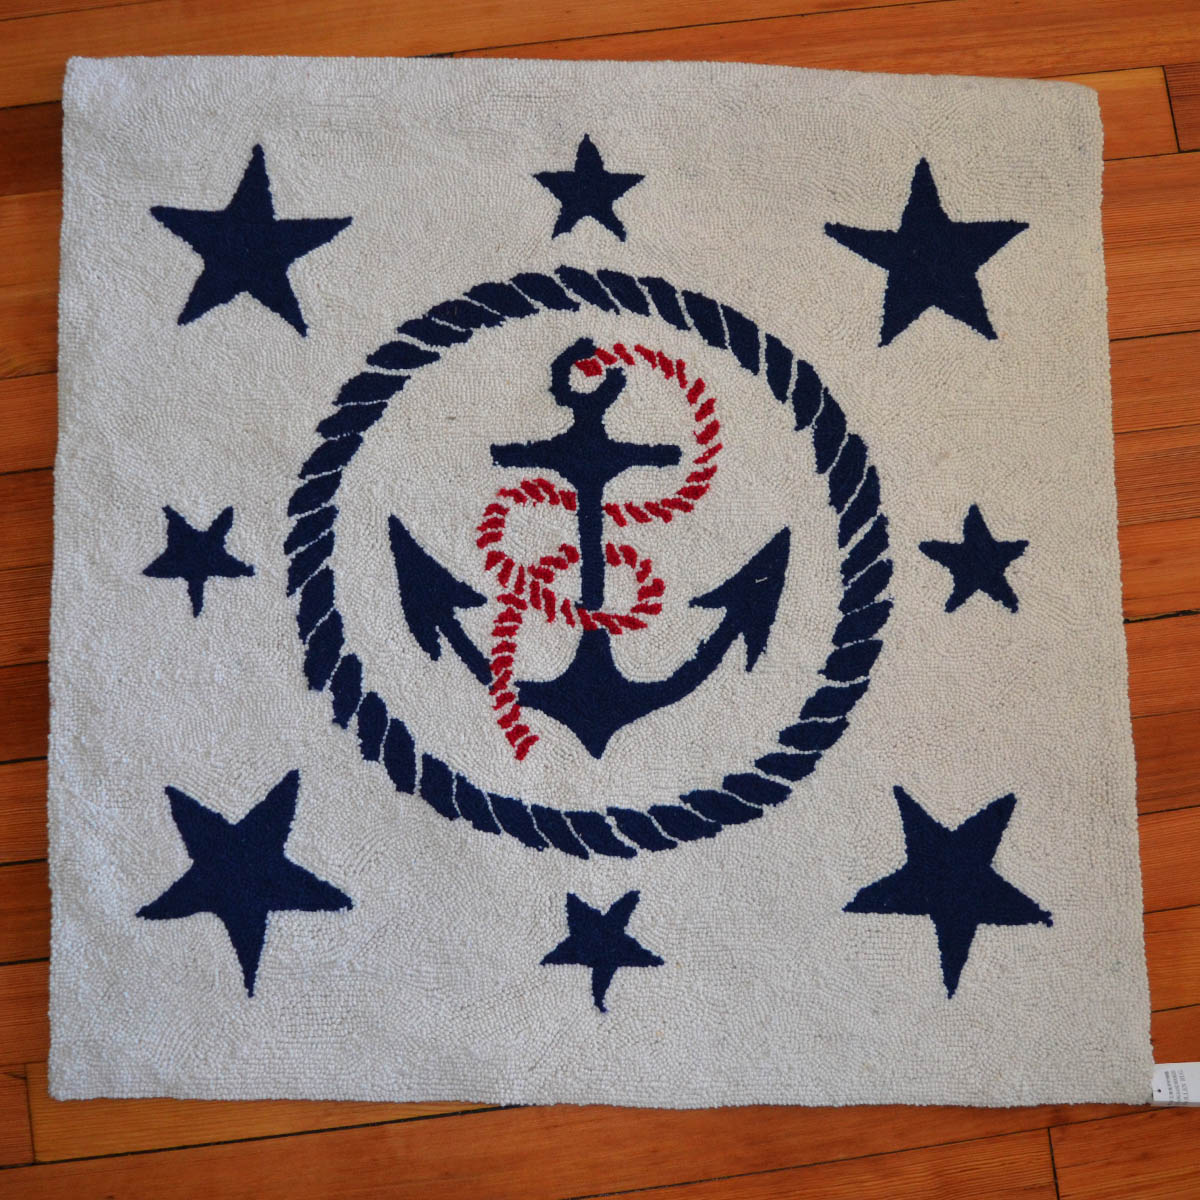 Hooked Nuatical RUG - Our generous neighbors at the Romantic Room have provided this fun and durable 100% wool hooked rug. Featuring a boldly colored nautical theme this small rug is perfect for the porch or entryway to welcome guests all summer long!Retail Value: $135.00